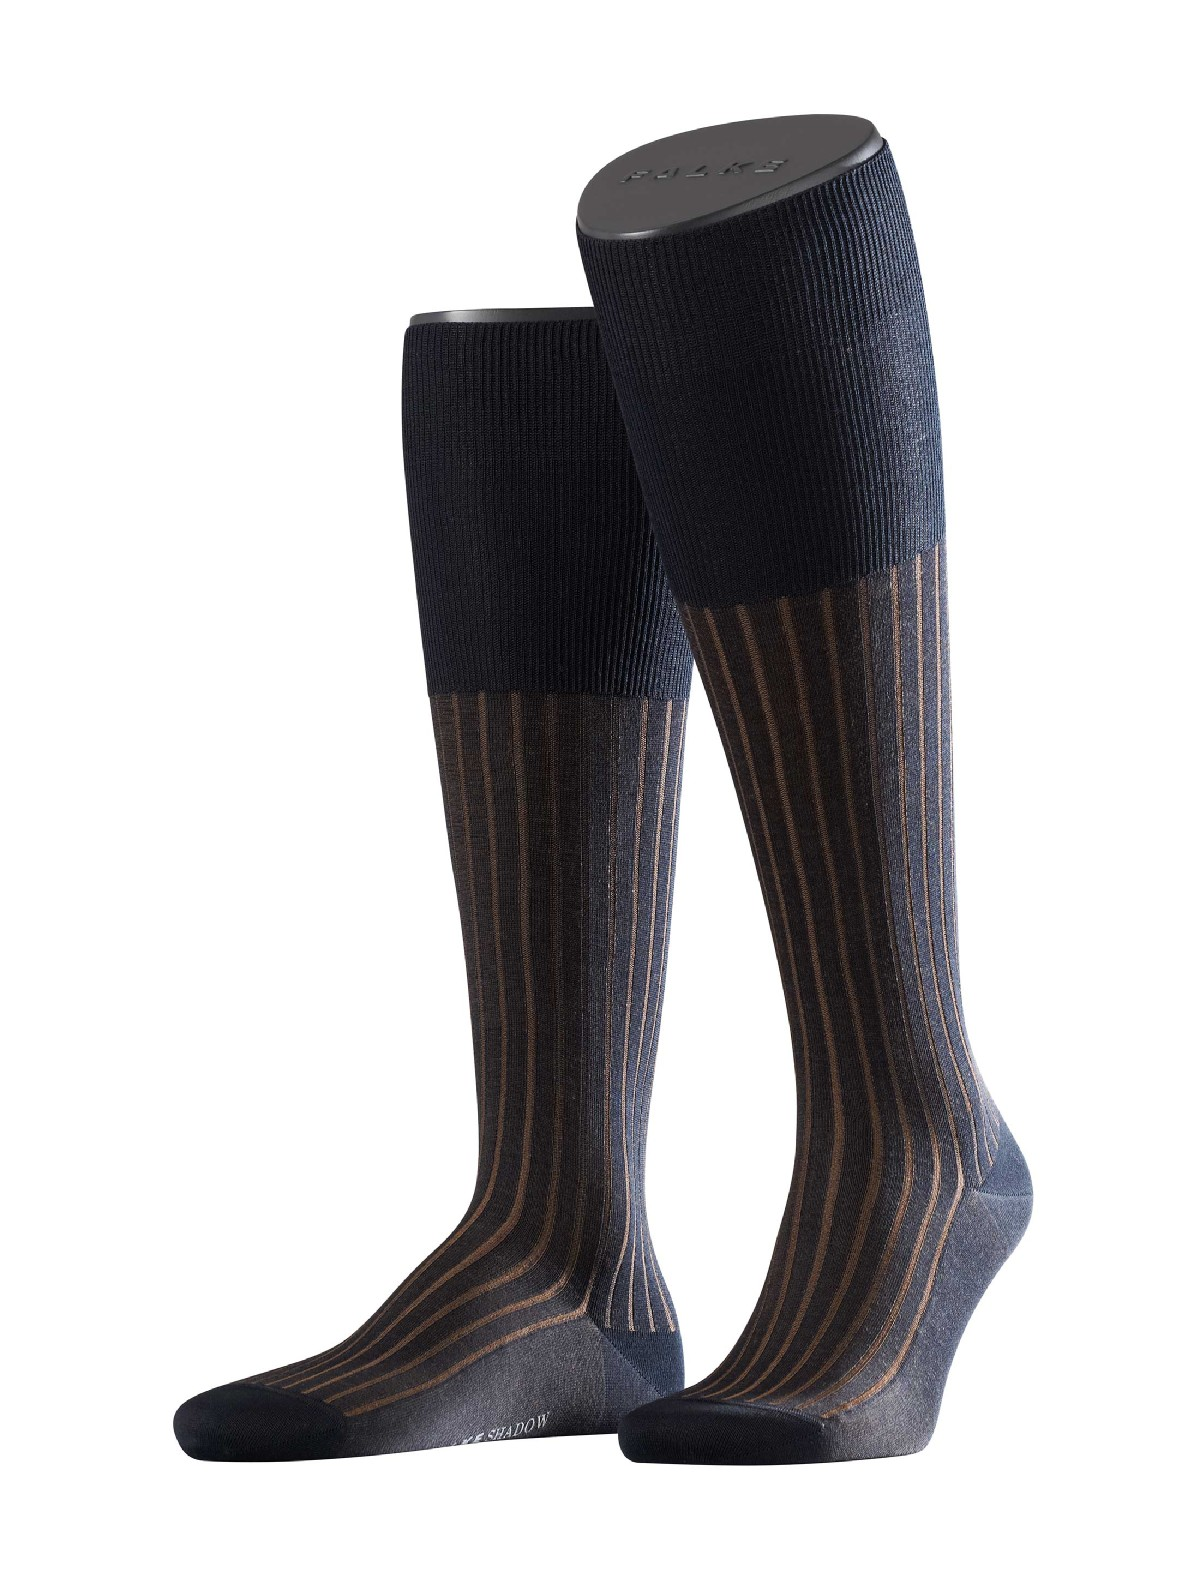 Outlet Clearance Store Cotton knee socks navy Falke Free Shipping Supply t9QtpWa1